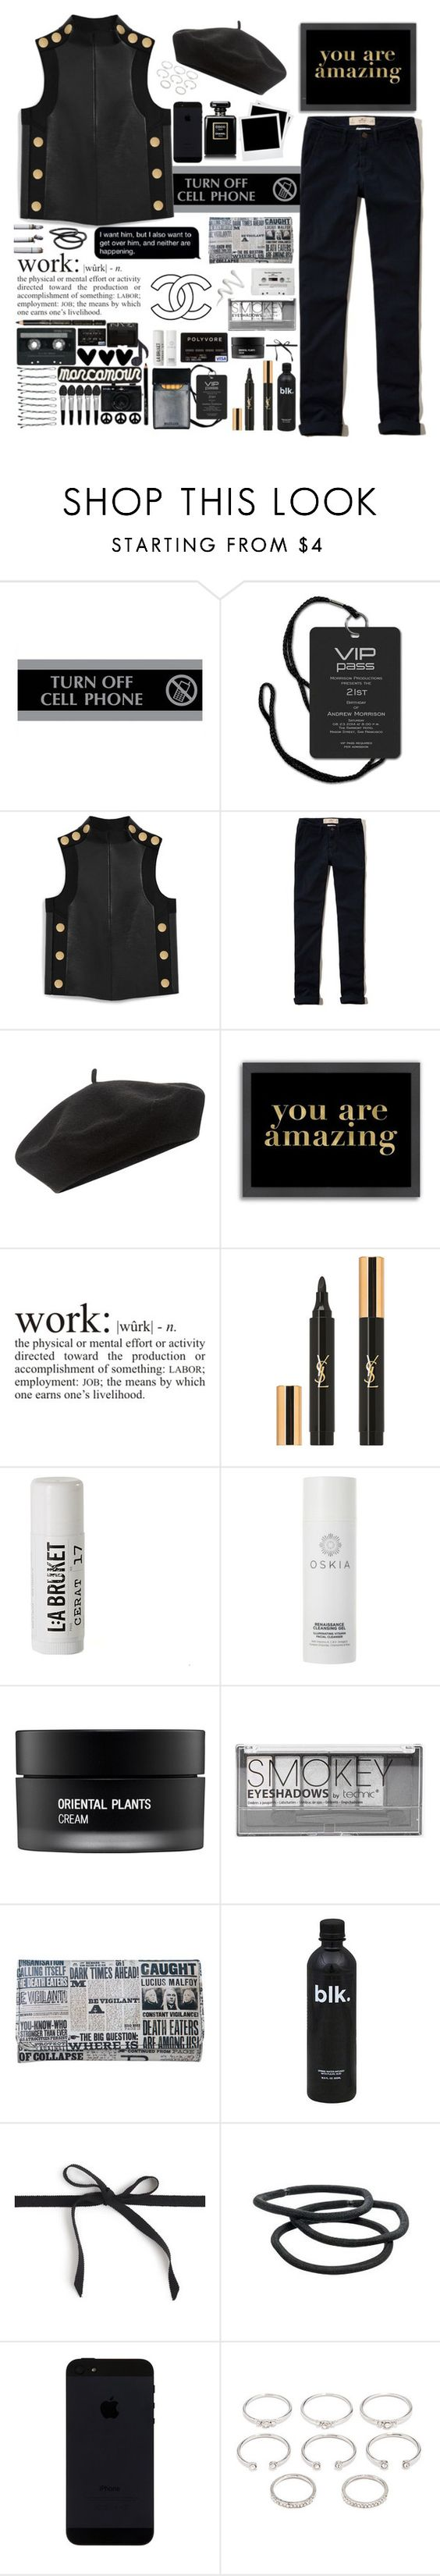 """""""♣️."""" by parkmona ❤ liked on Polyvore featuring U.S. Stamp & Sign, Mulberry, Hollister Co., Accessorize, Americanflat, WALL, Yves Saint Laurent, L:A Bruket, Oskia and Chanel"""